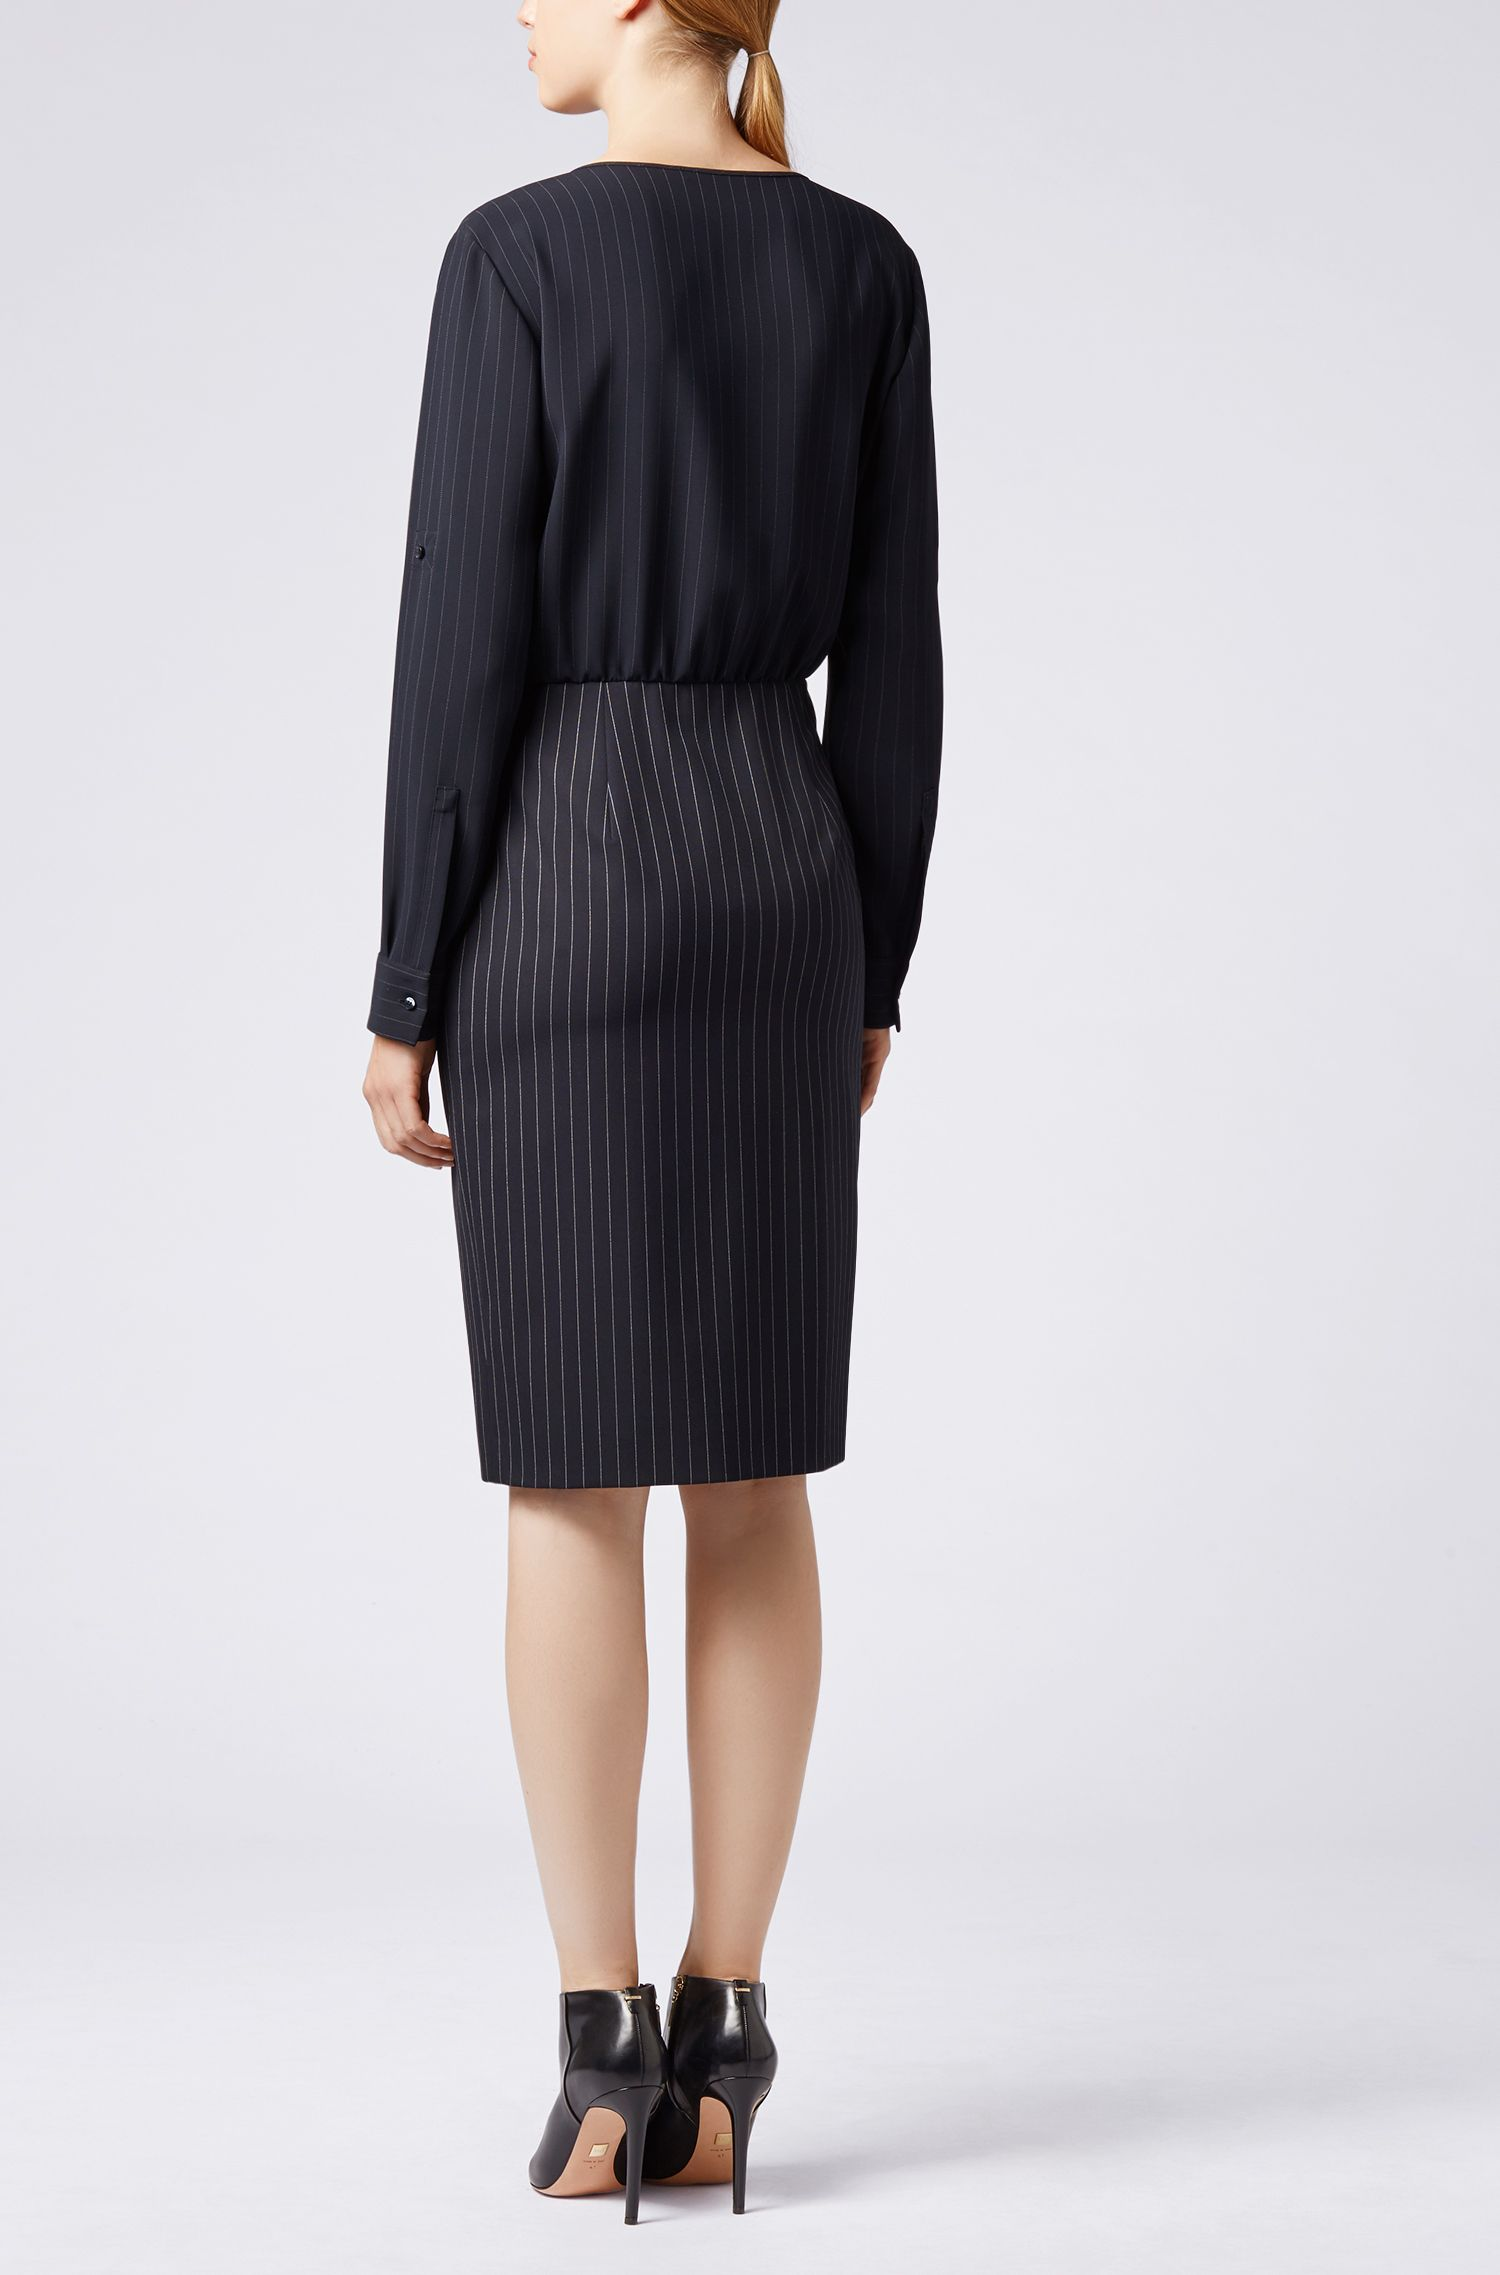 Pinstripe dress with blouse-style upper section BOSS